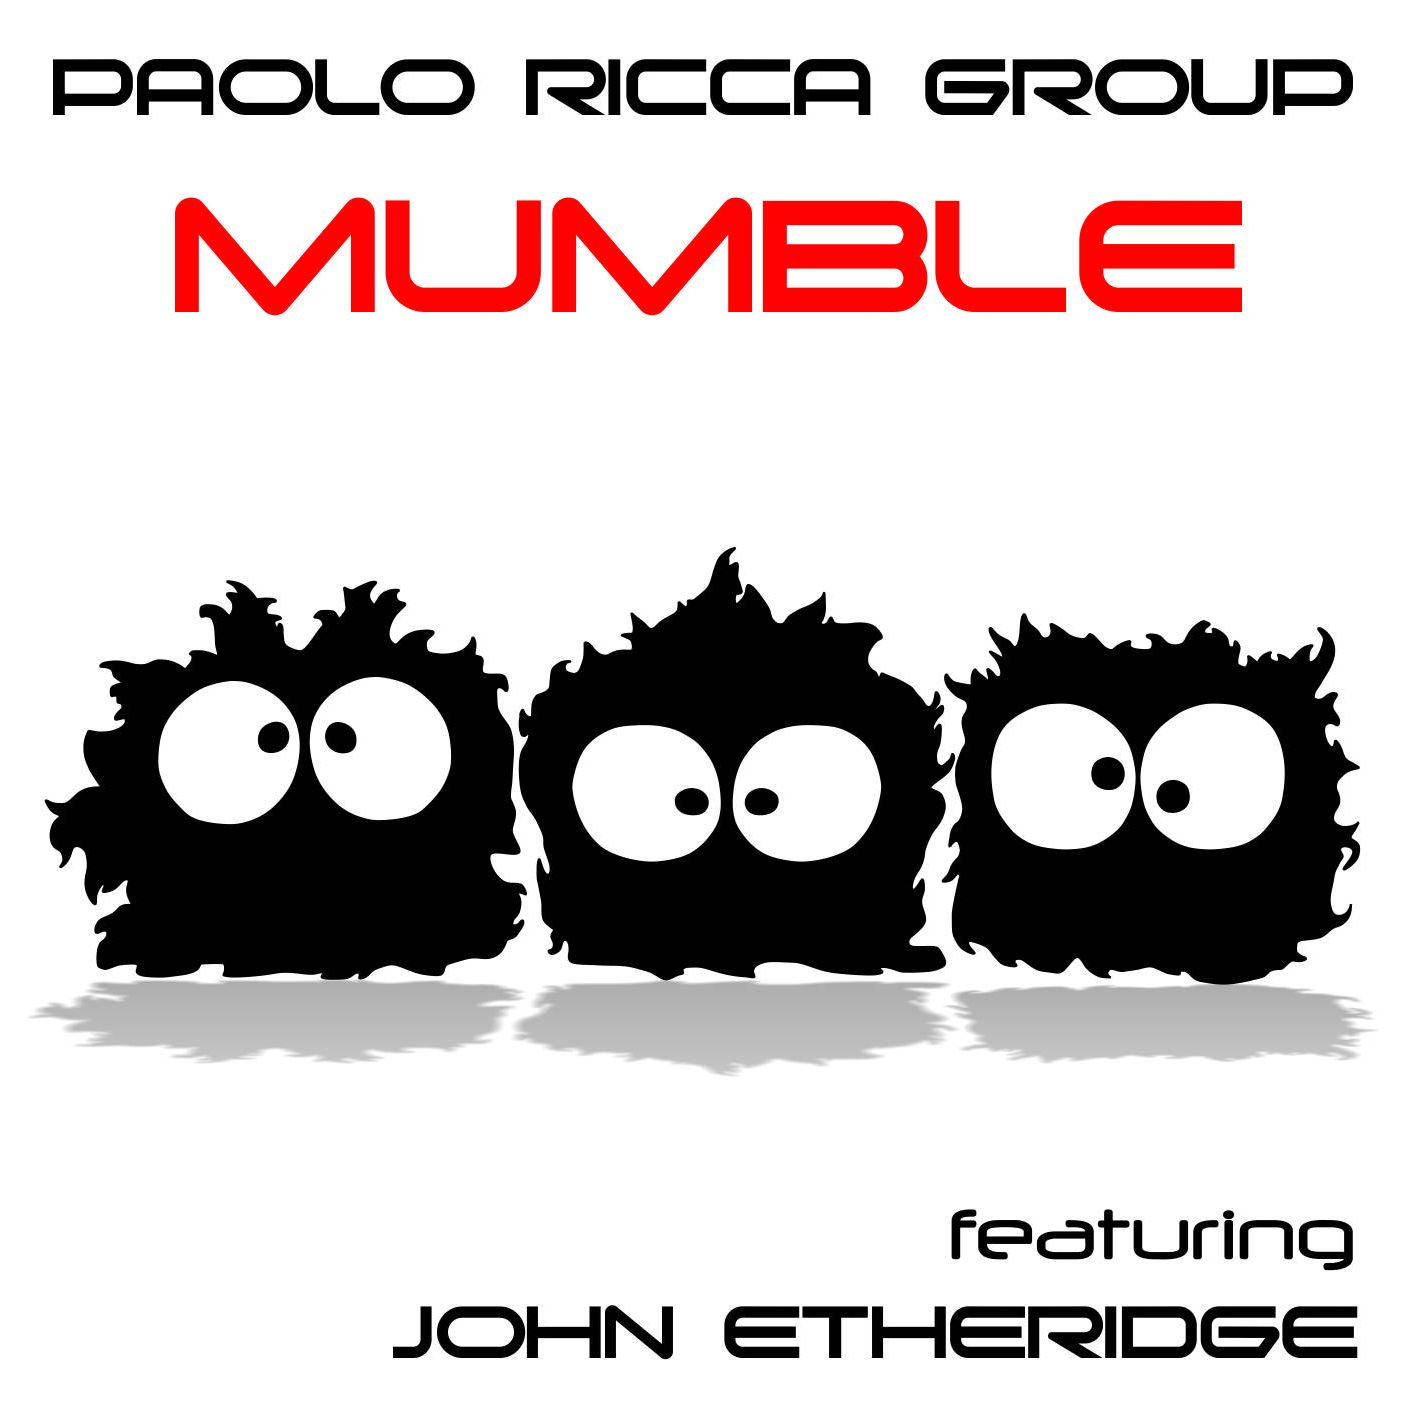 PAOLO RICCA GROUP - Mumble Featuring John Etheridge CD